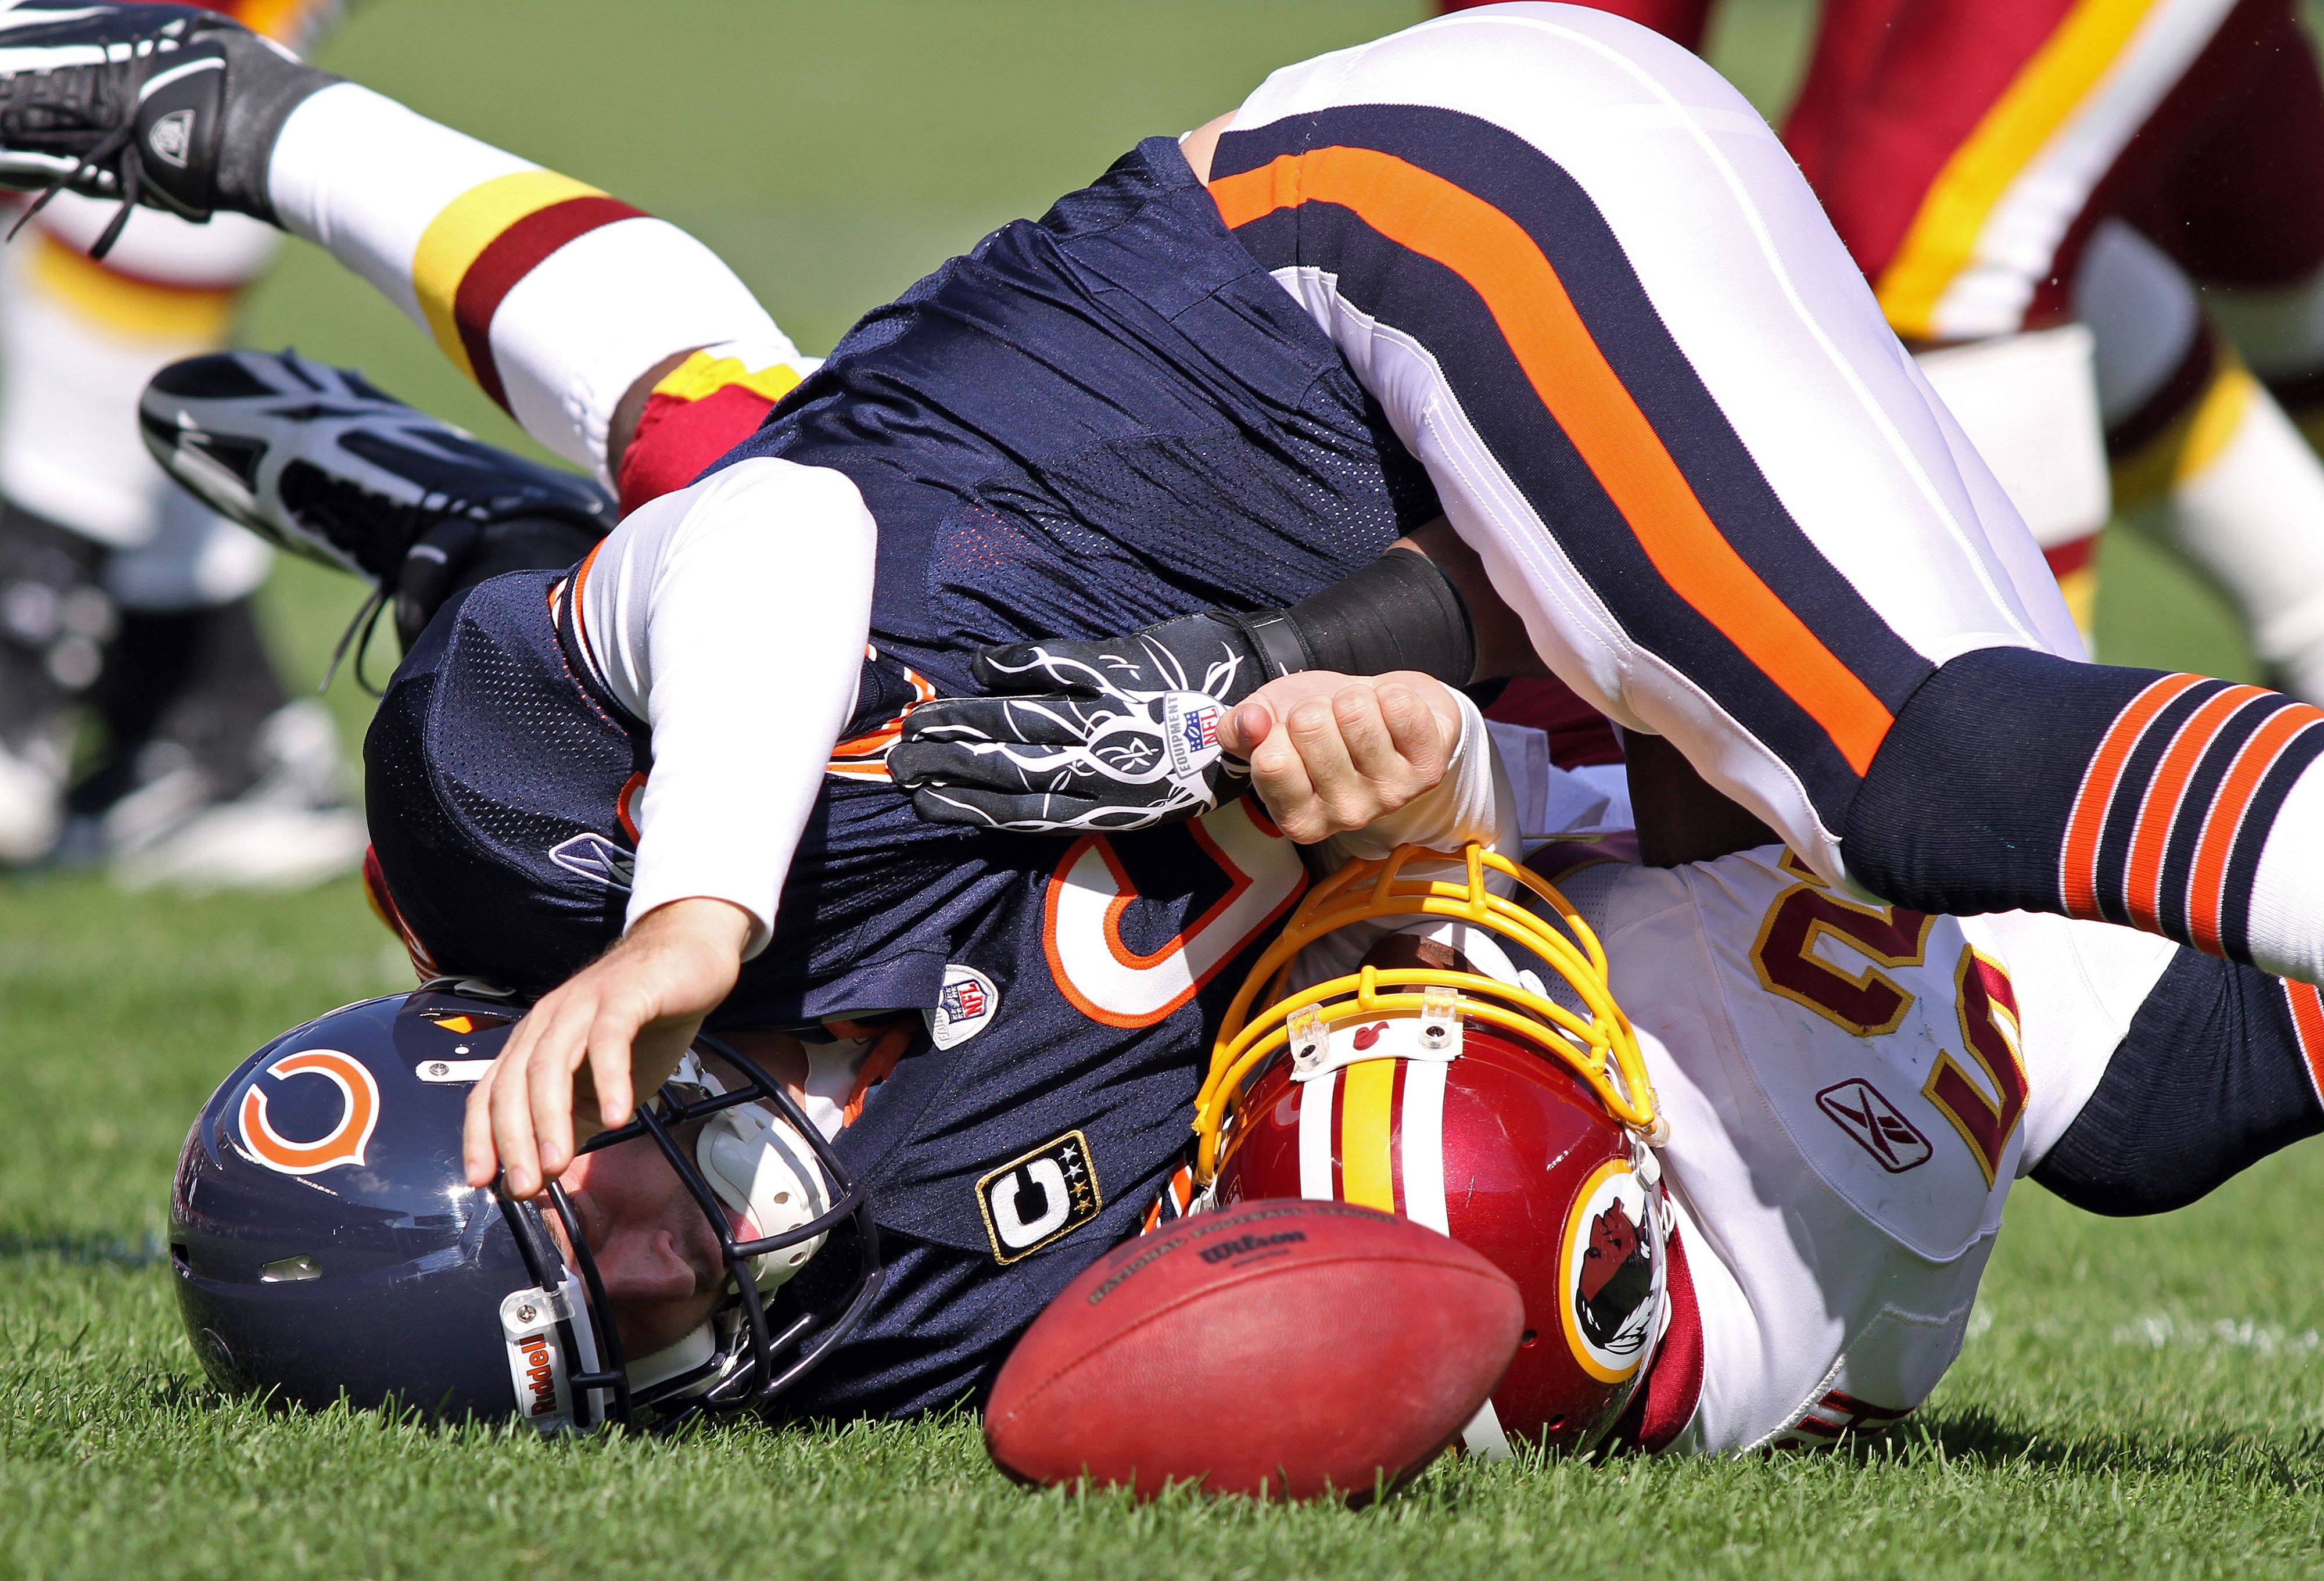 Chicago Bears quarterback Jay Cutler is sacked by Washington Redskins linebacker Rocky McIntosh during the Bears' 14-17 loss to the Redskins.